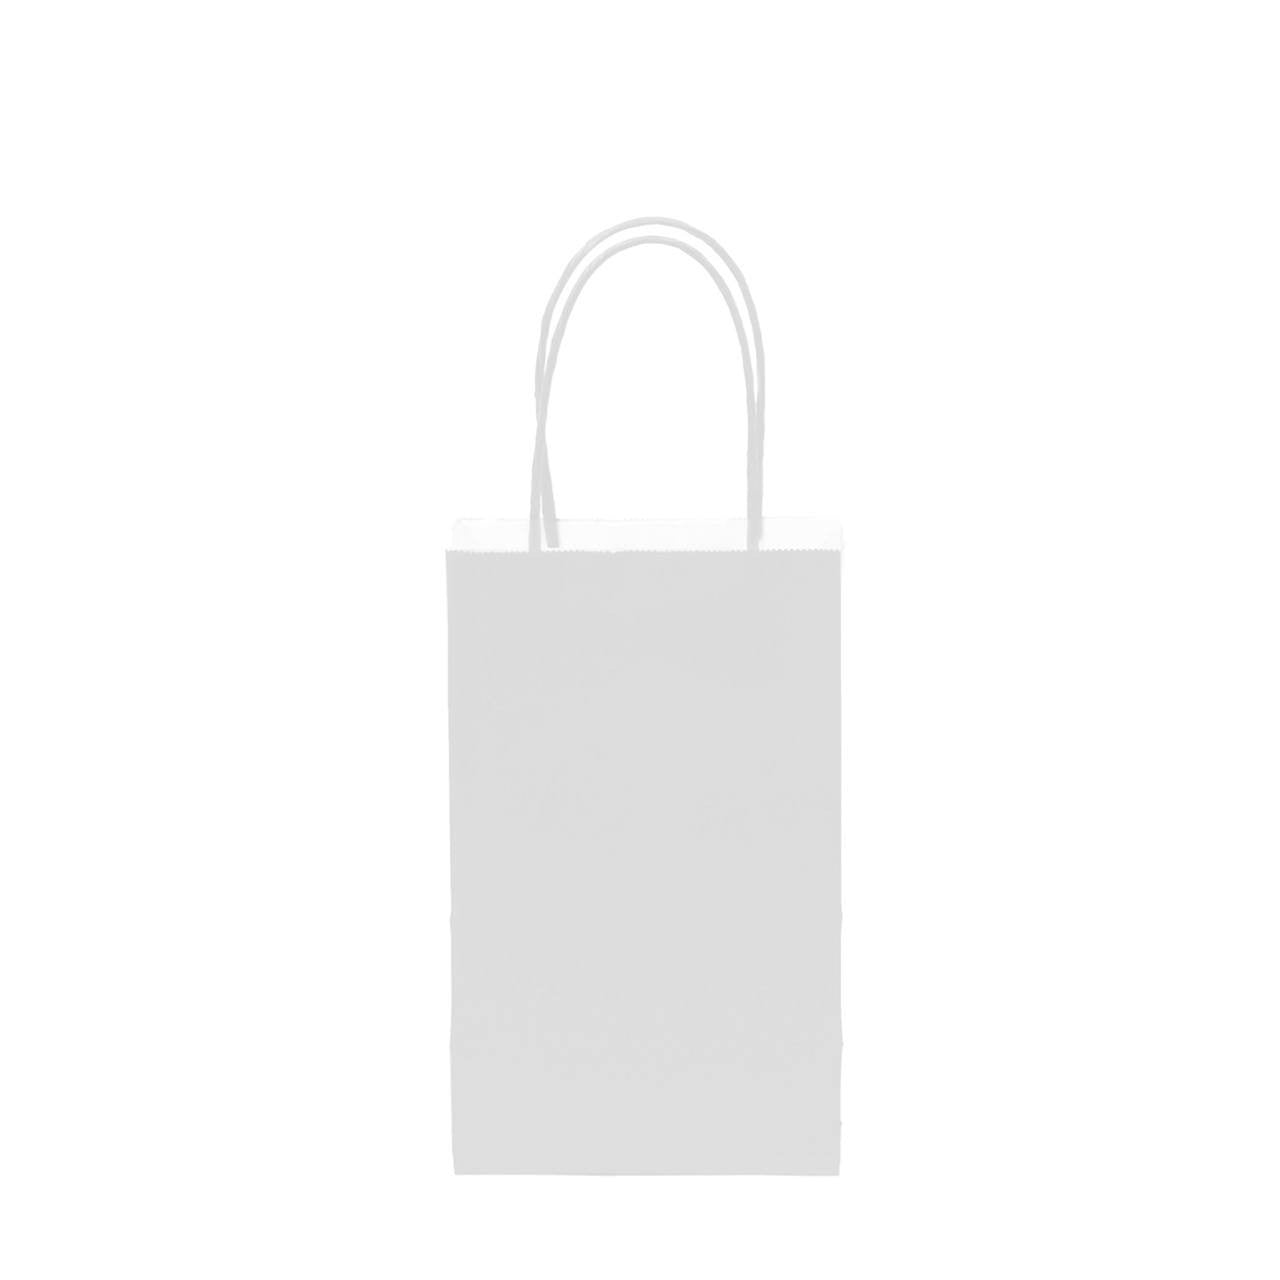 "12 pcs- Solid White Color Kraft Bag 5"" x 8.25"""